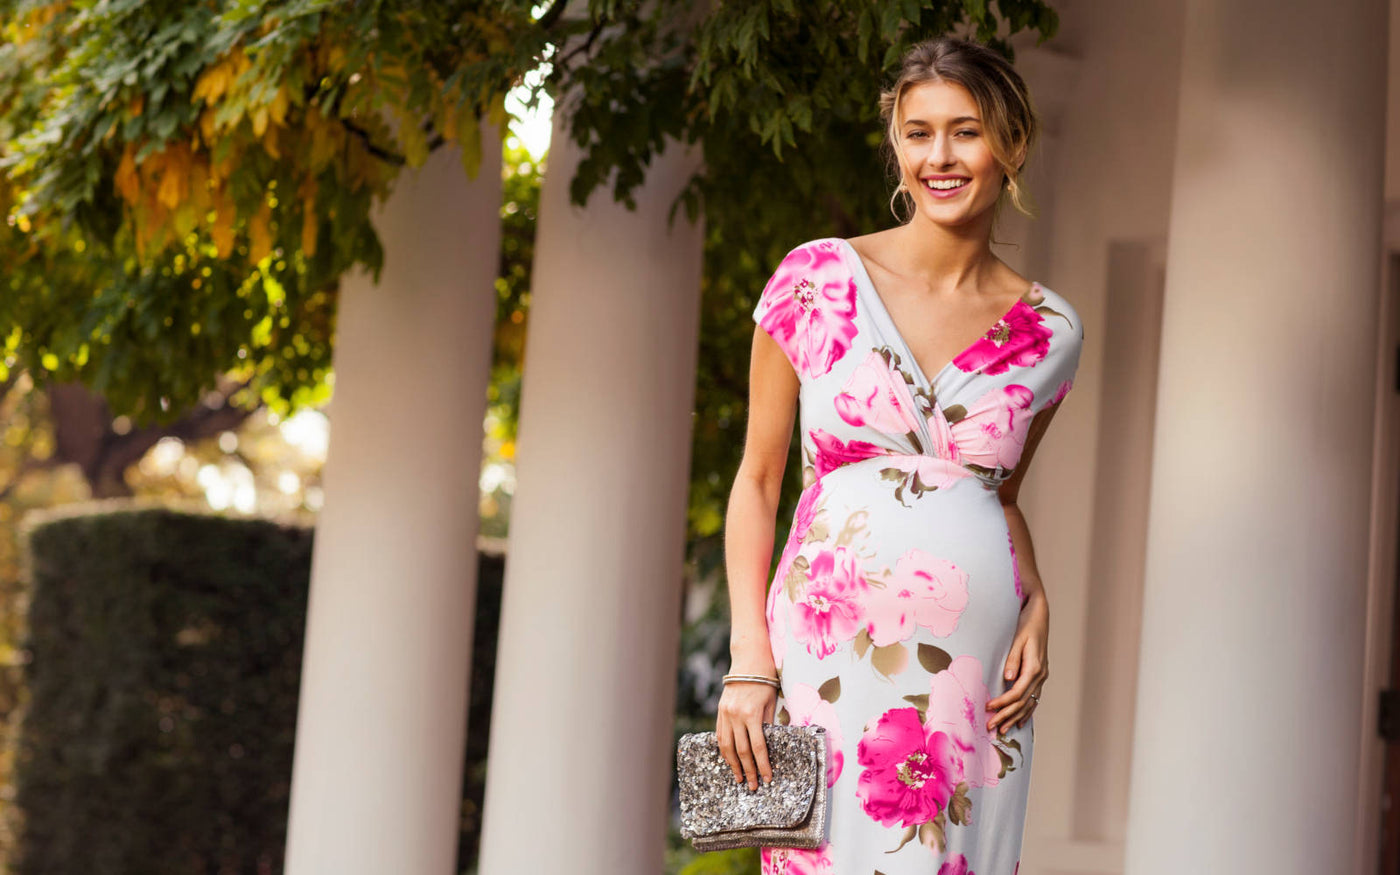 30d7826ef3cb0 WELCOME TO PREGOLI. Pregoli is New Zealand's leading Special Occasion  Maternity ...